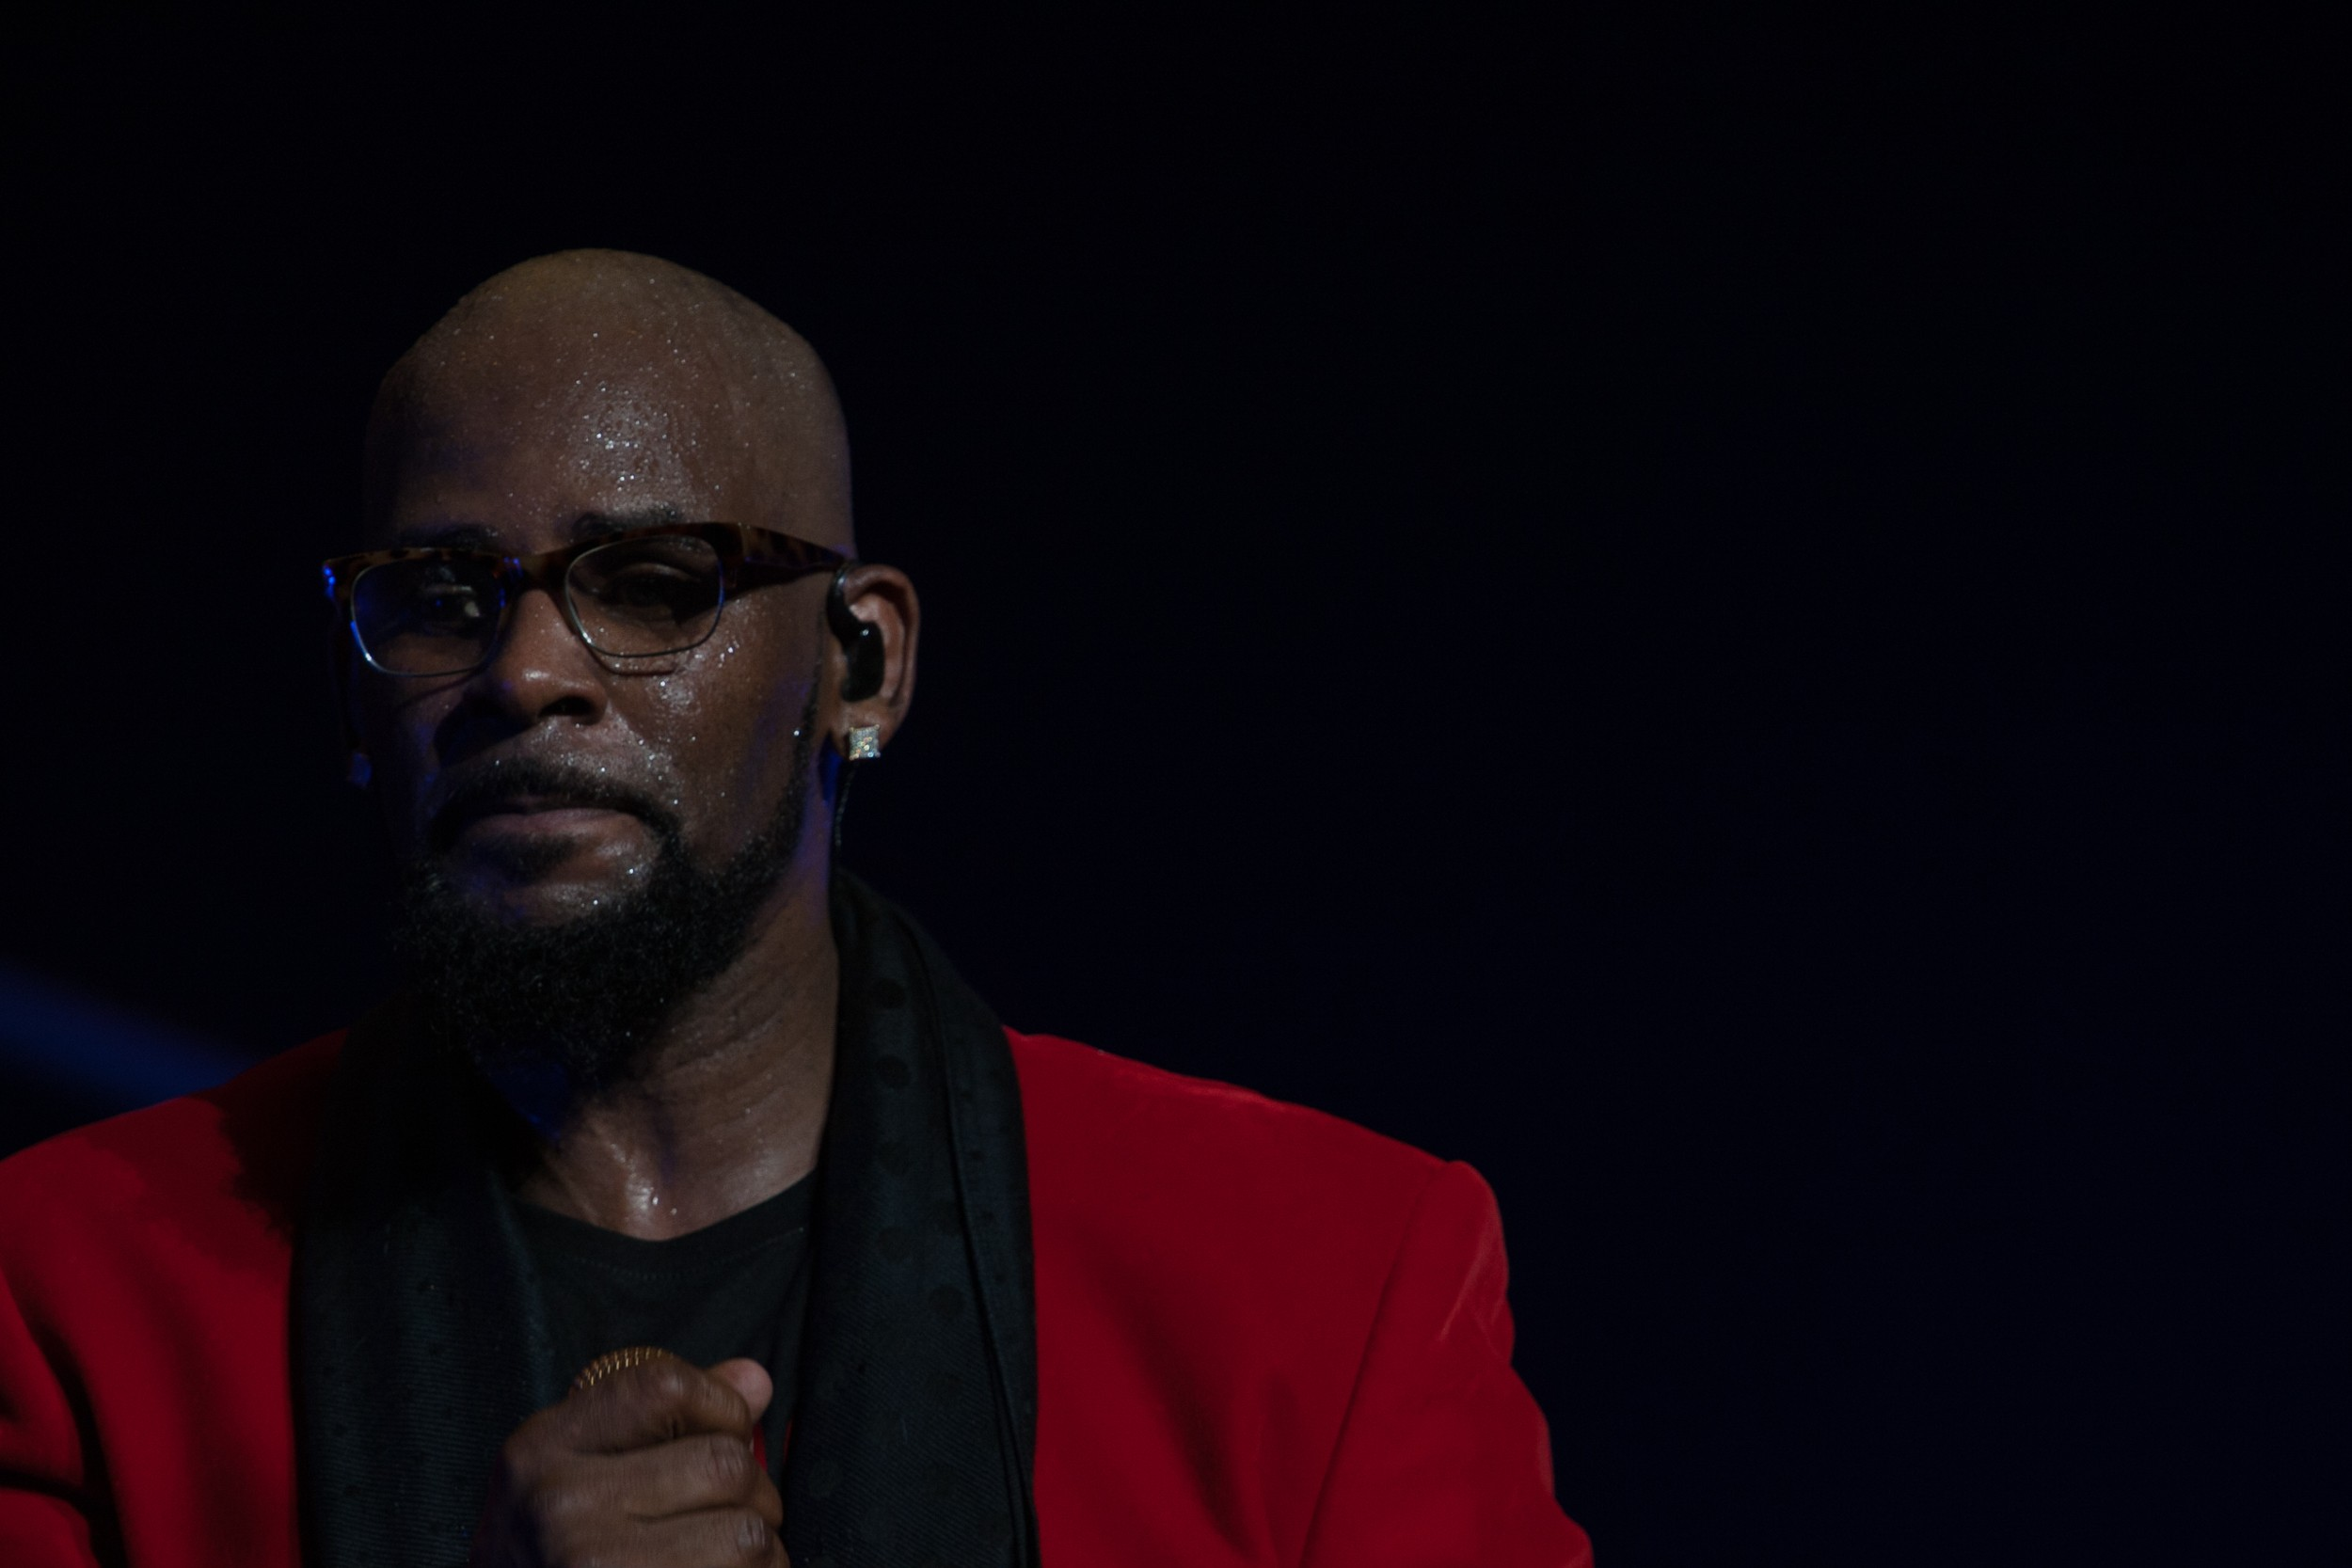 R. Kelly faces new criminal investigation following dream hampton's  Lifetime doc | News Hits